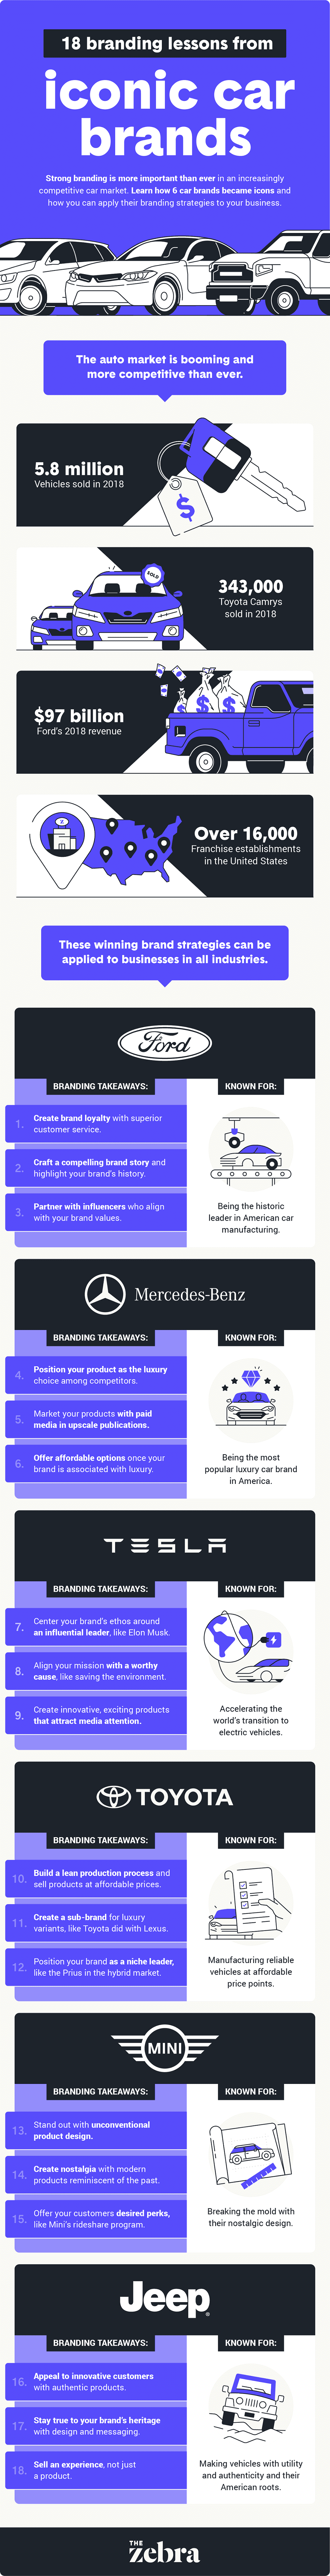 Top Branding Lessons from Well-Known Car Makers